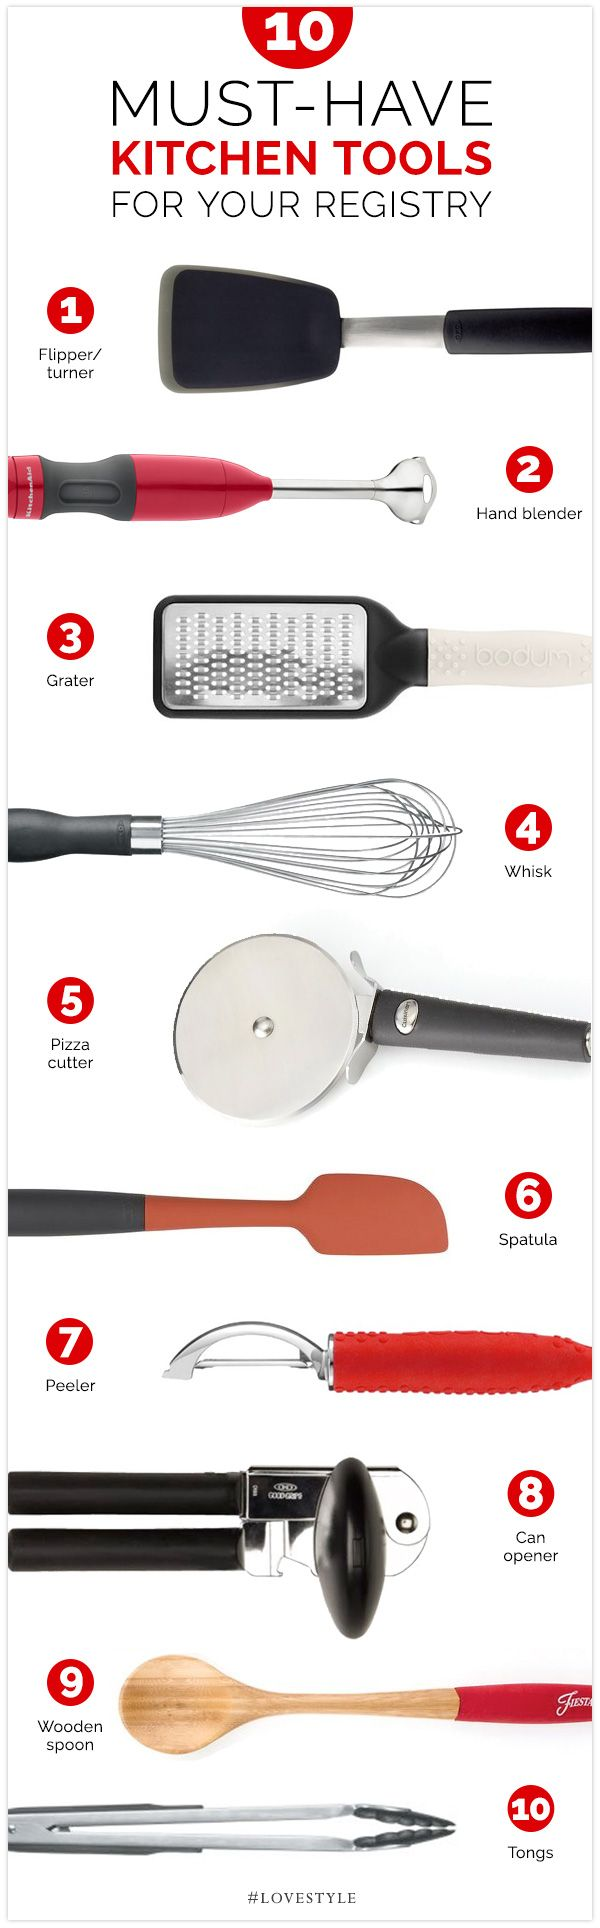 Kitchen Tools List 10 must-have kitchen tools for your registry | weddings, kitchens